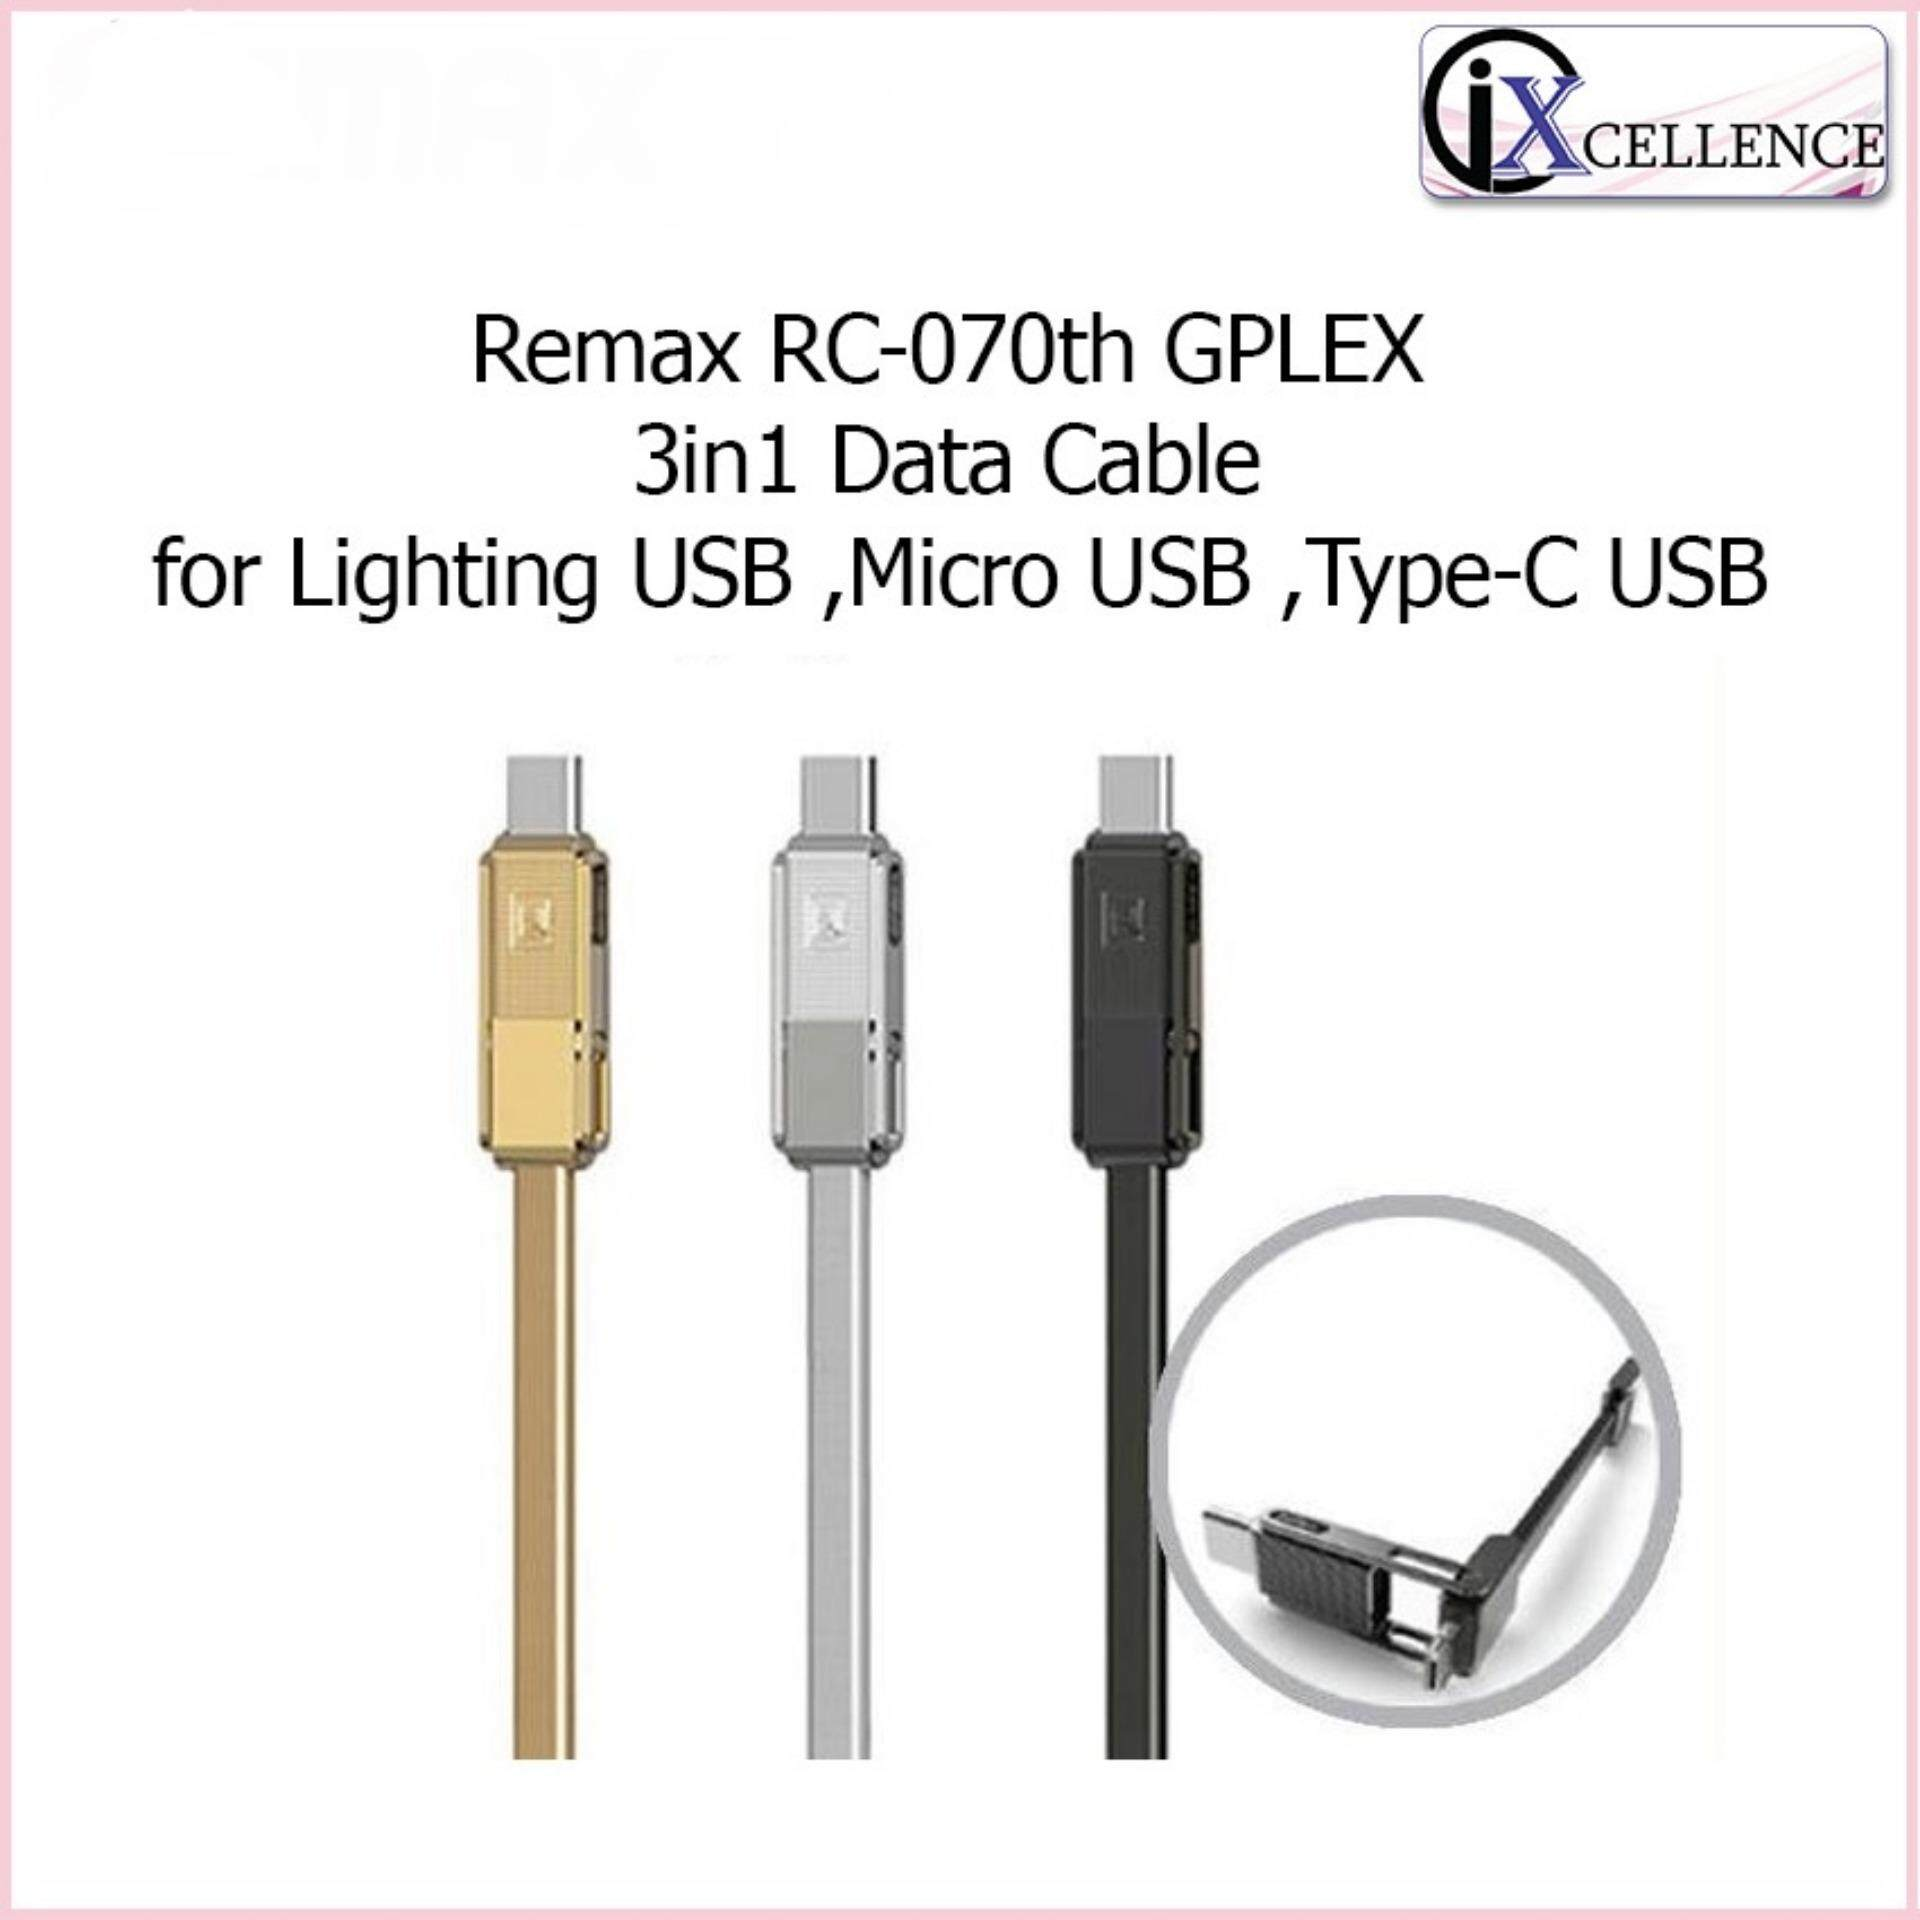 Sell Ruisen Remax 3in1 Cheapest Best Quality My Store Original Lesu Series Data Cable 3 In 1 Lightning Usb Type C Micro 1m Rc 066th Ios8pin Whitemyr28 Myr 28